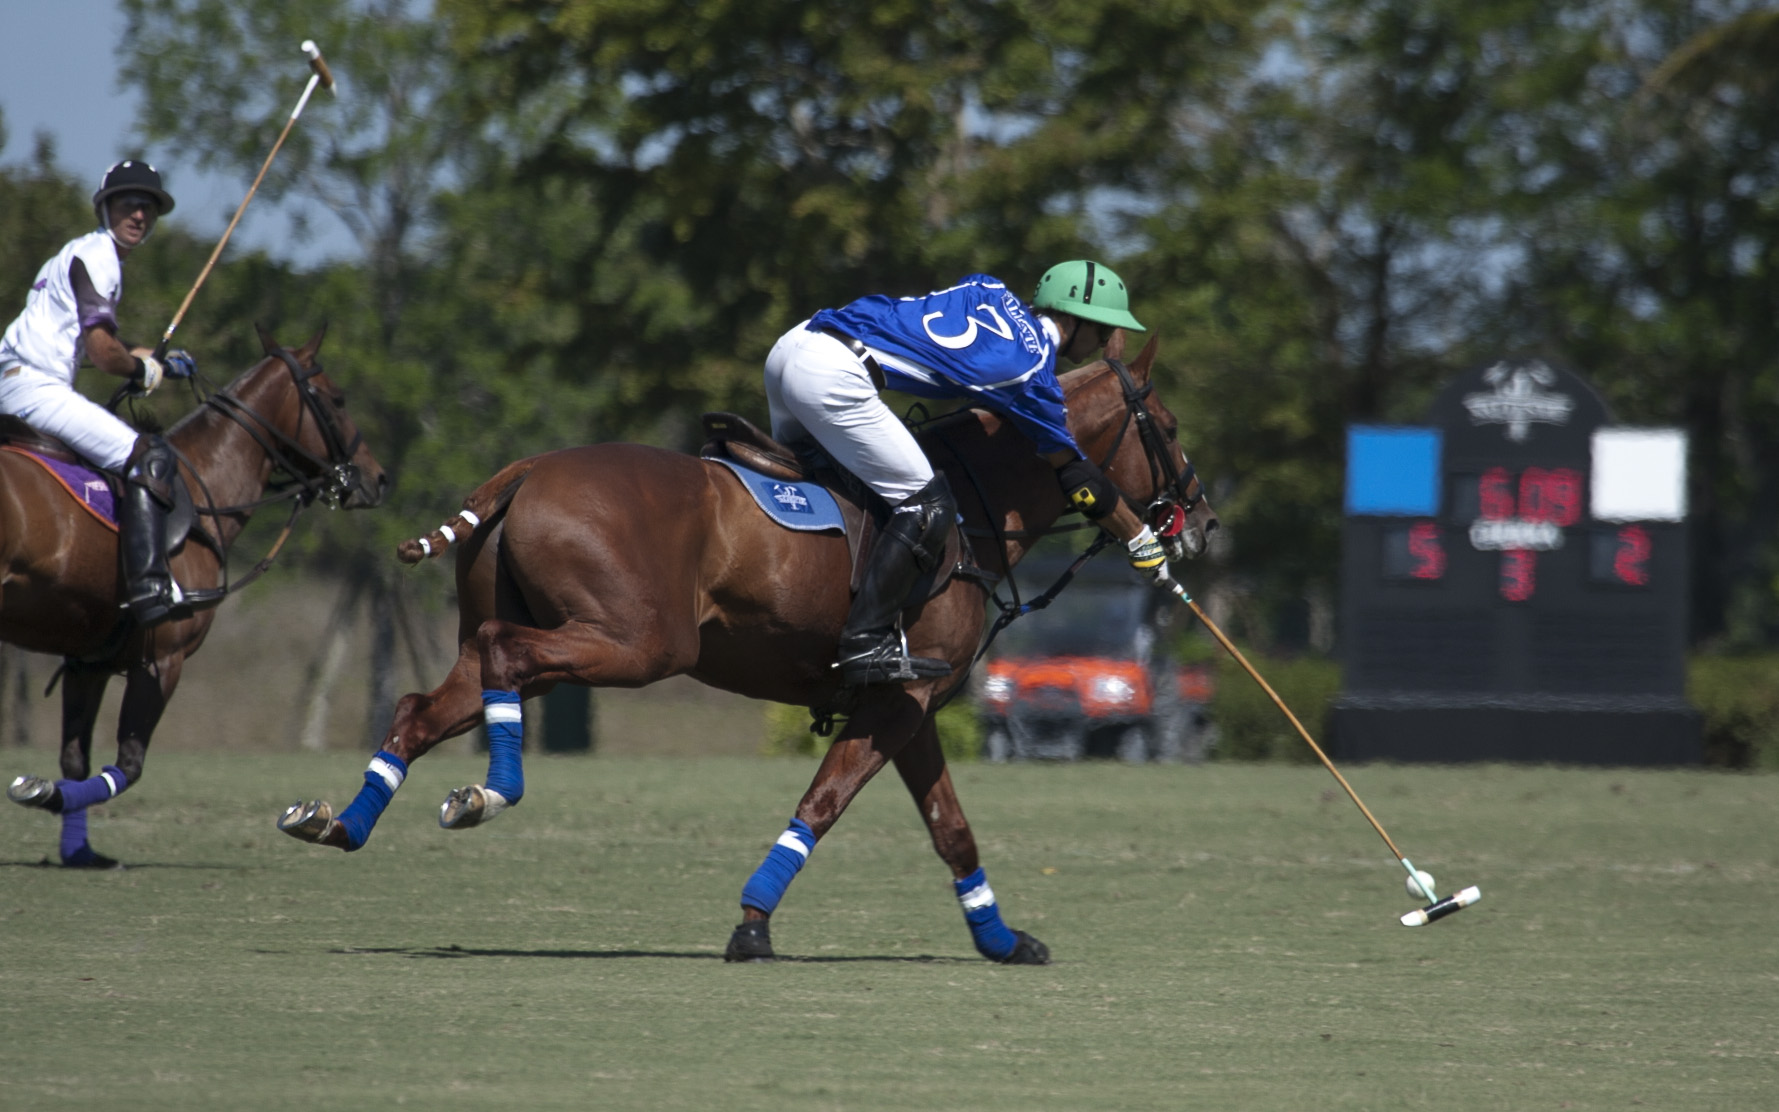 Juan Britos of Valiente on his way to scoring one of his six game-high goals.